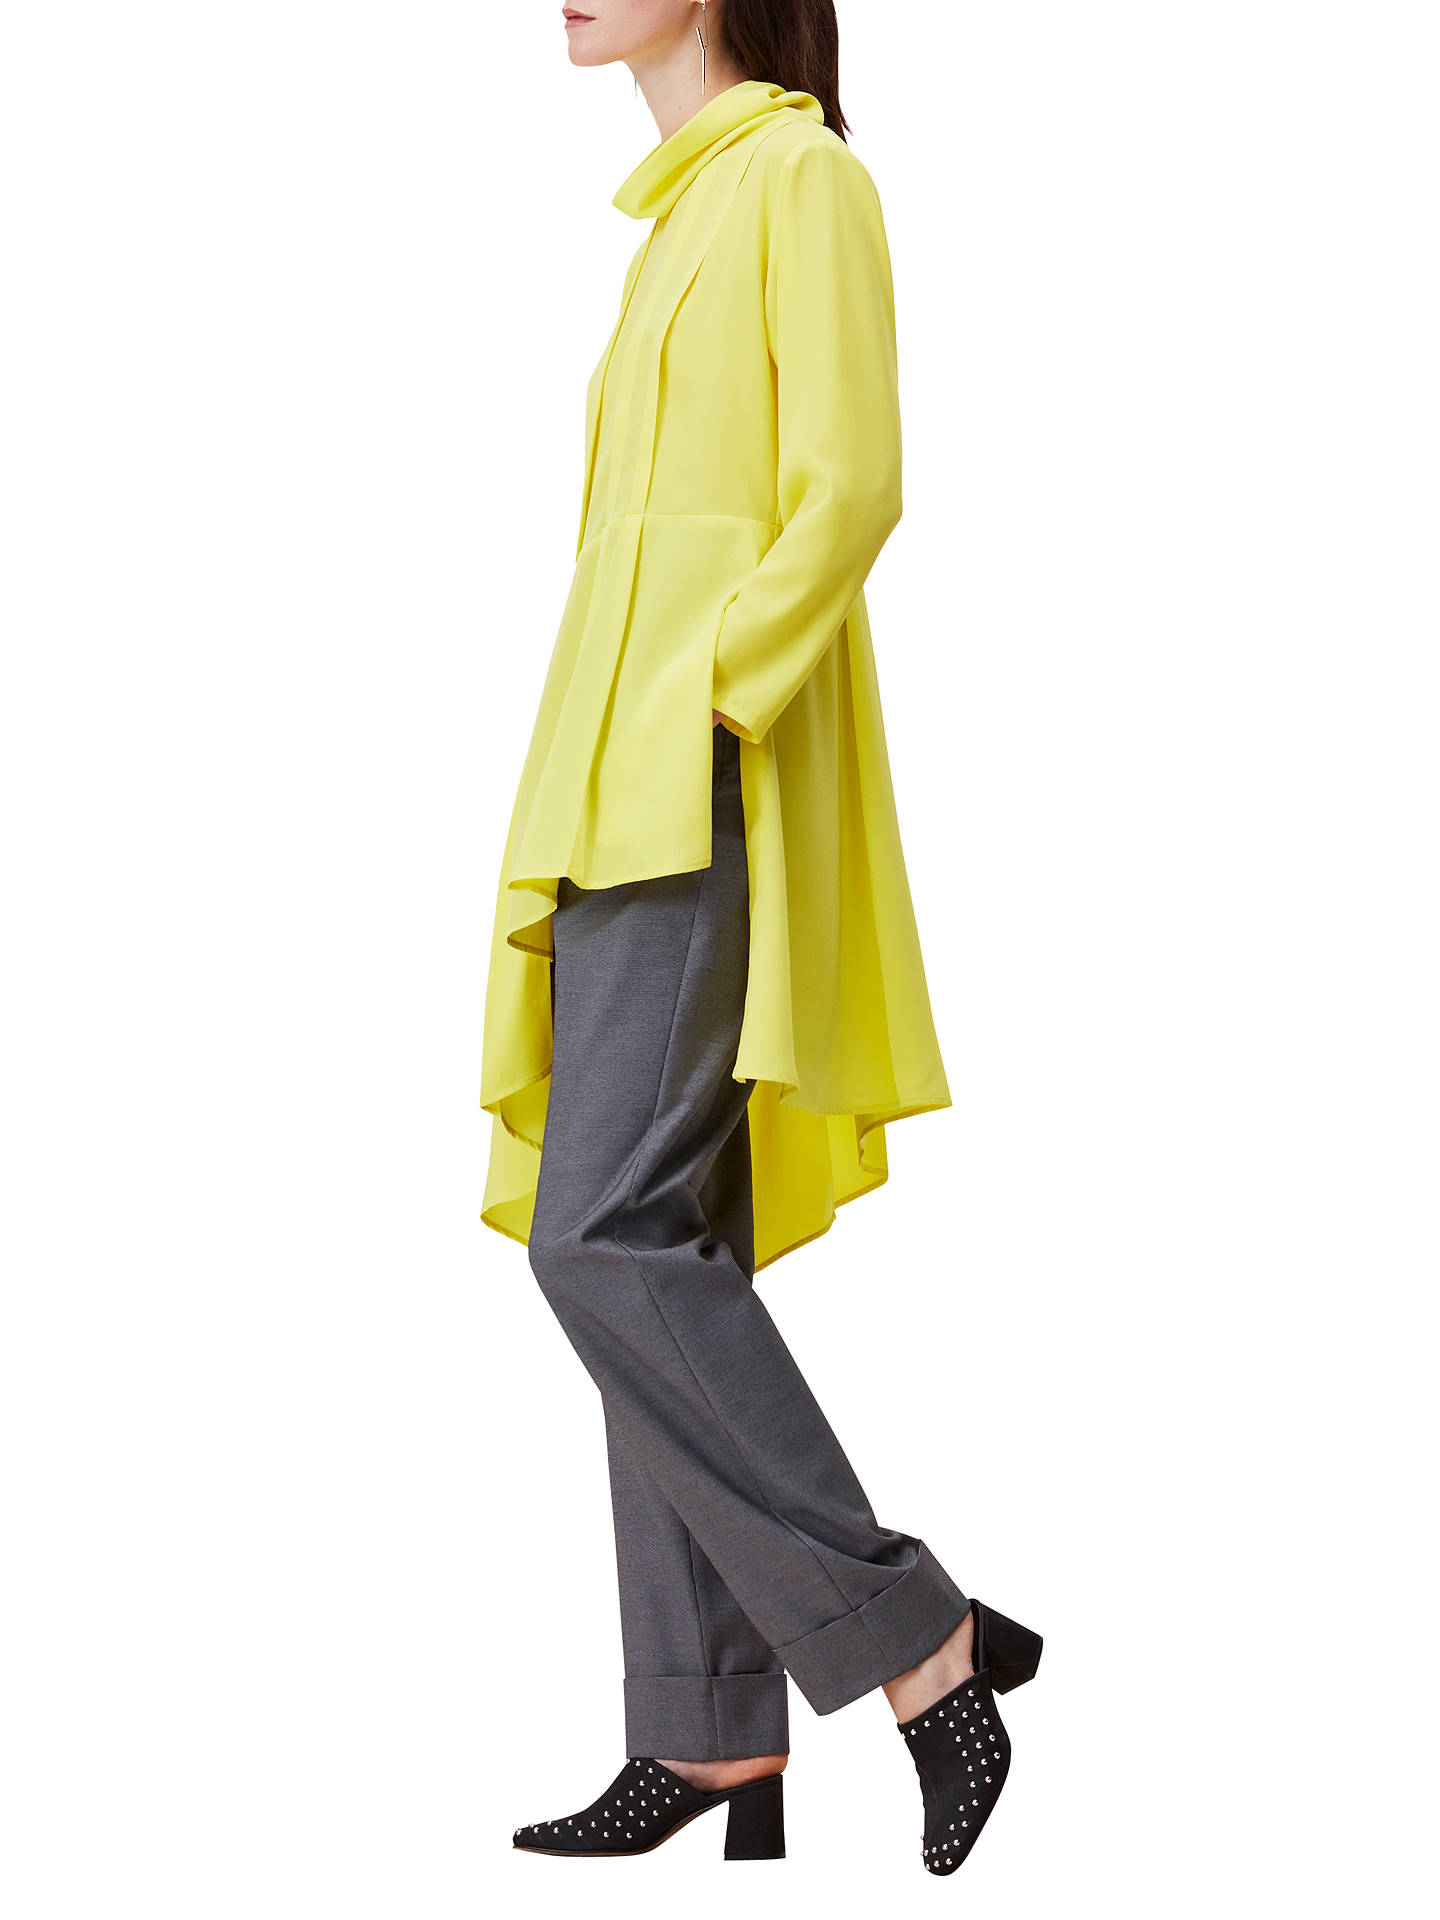 eaeffbb9920 ... Buy Finery Tasso Cowl Neck Tunic Dress, Yellow, 8 Online at  johnlewis.com ...